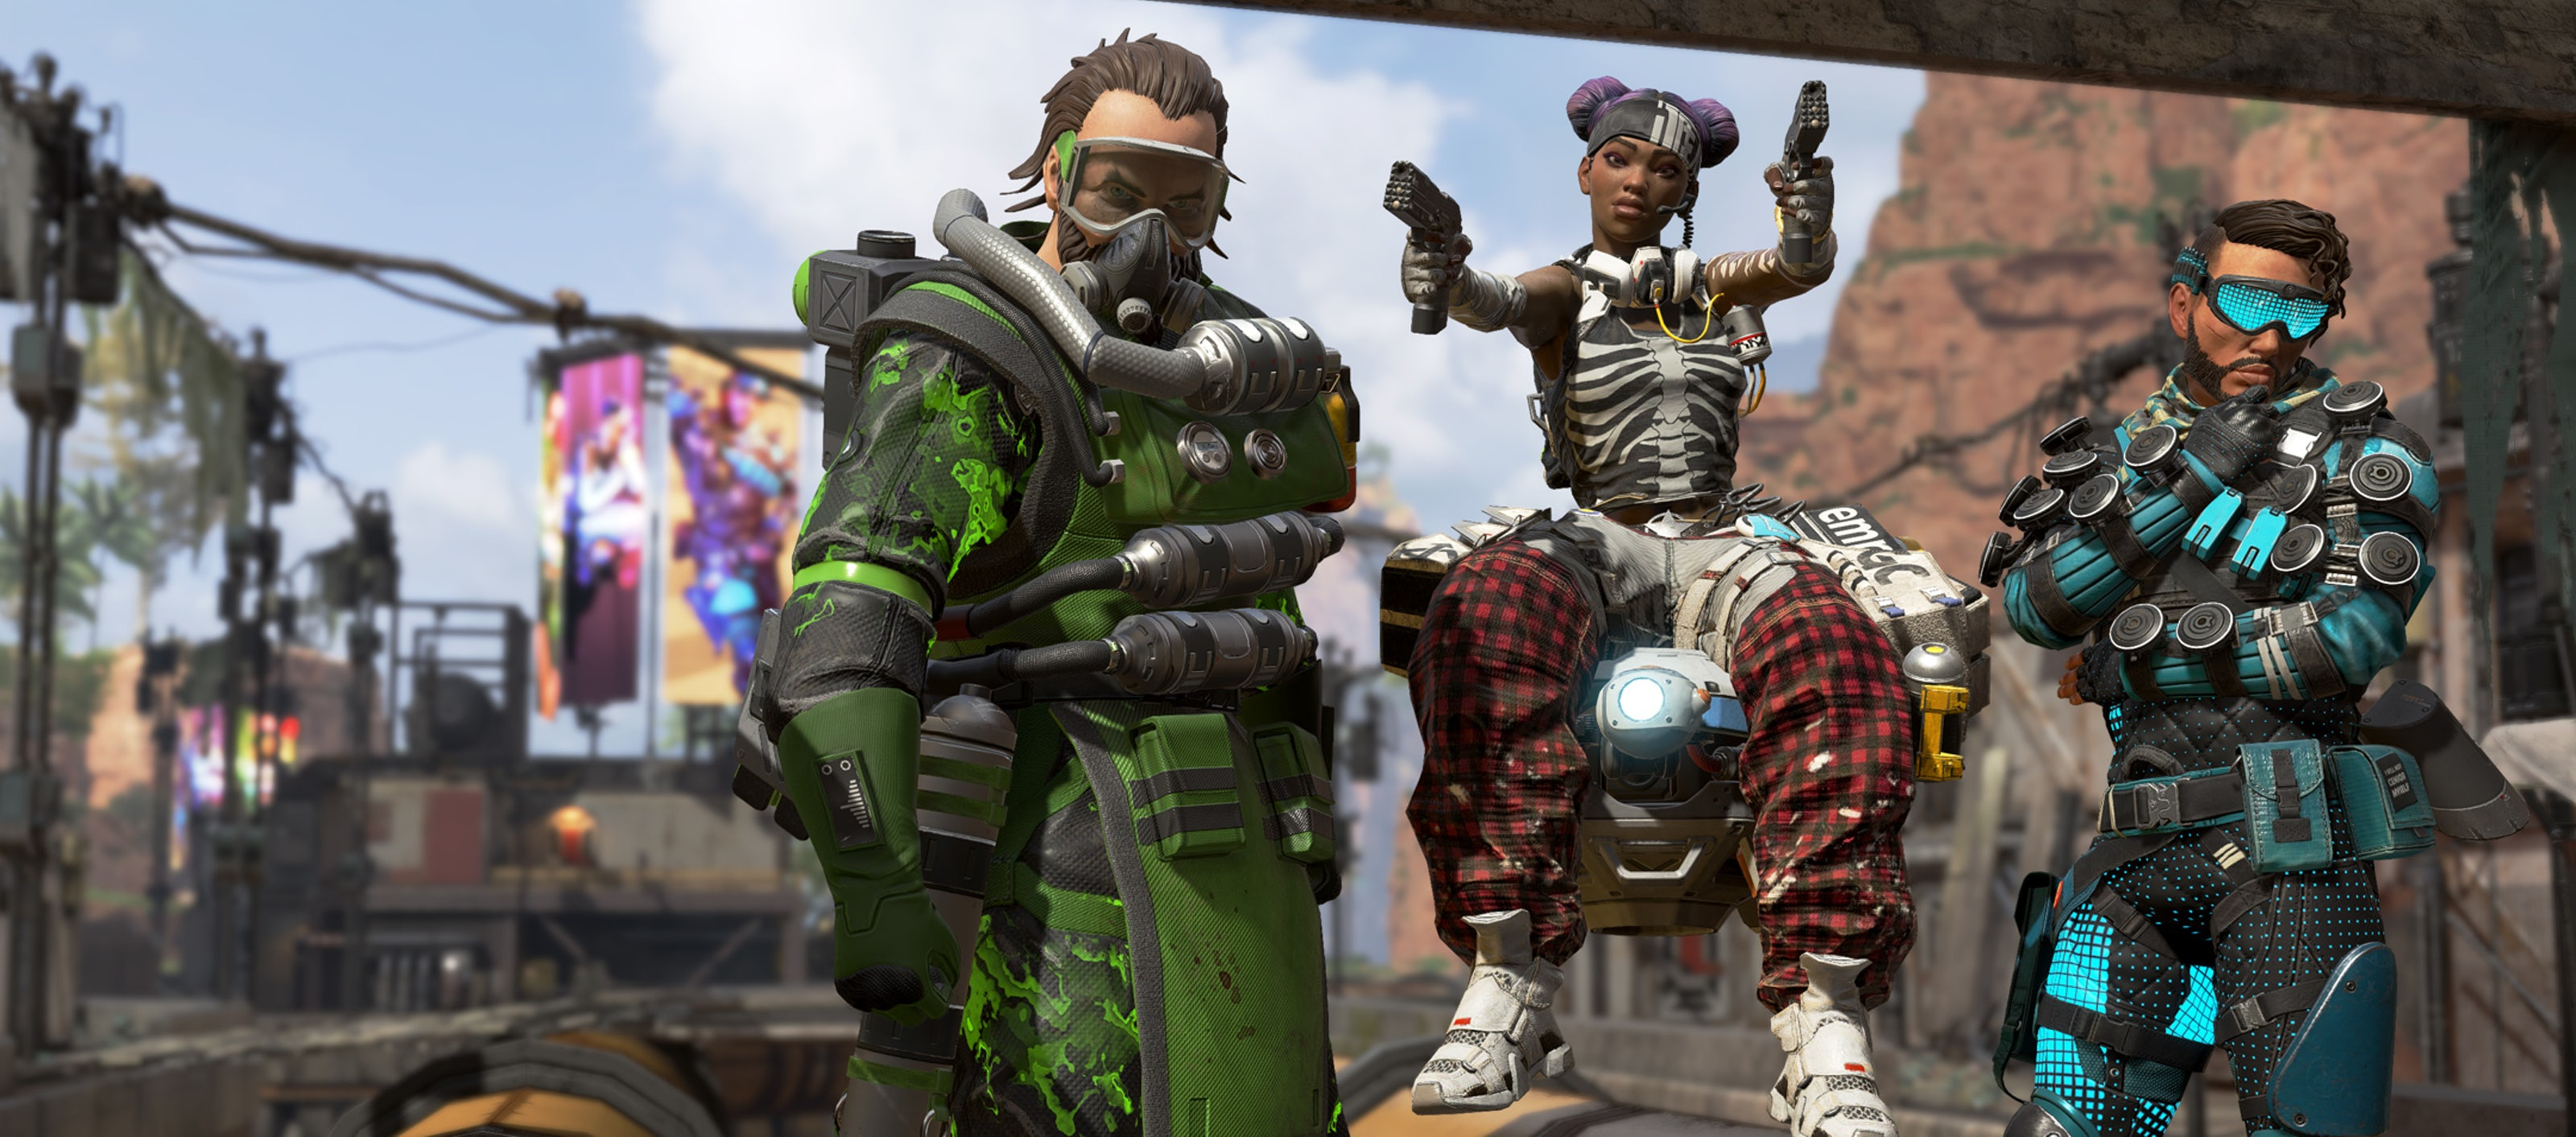 Apex Legends,' a Surprise 'Fortnite' Competitor, Just Came Out of